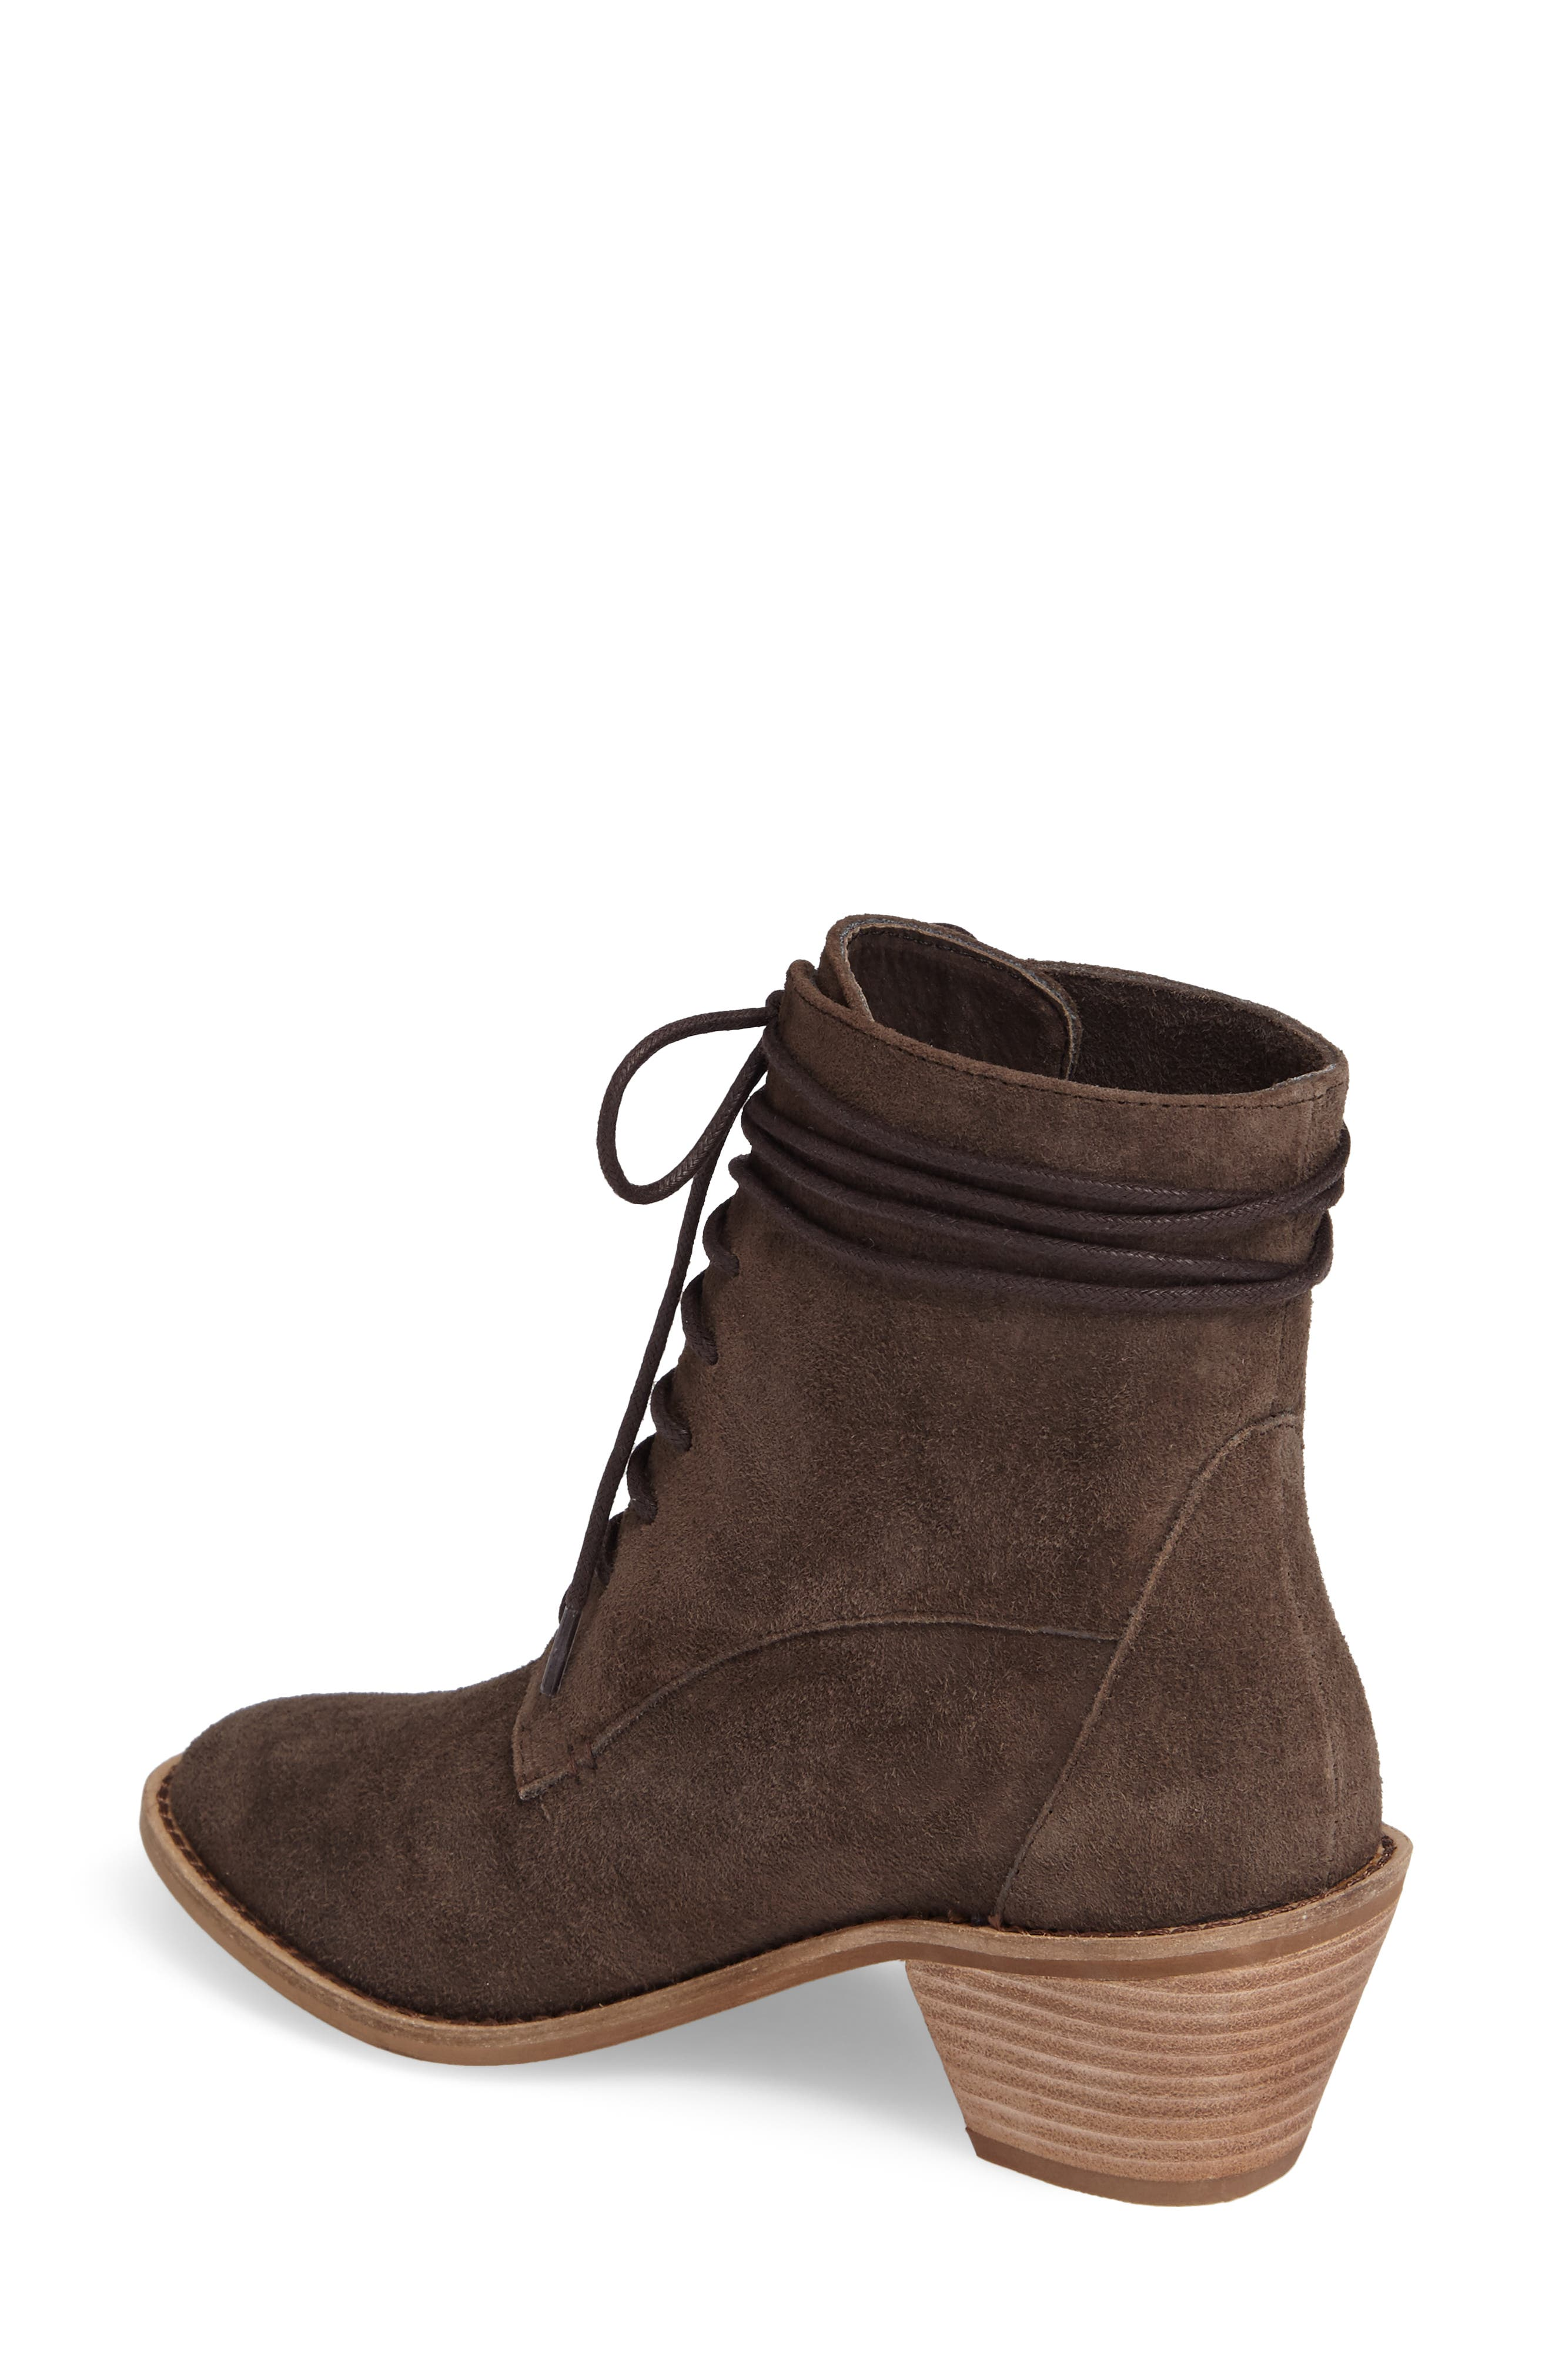 Kelsi Dagger Brooklyn Kingsdale Lace-Up Bootie (Women)